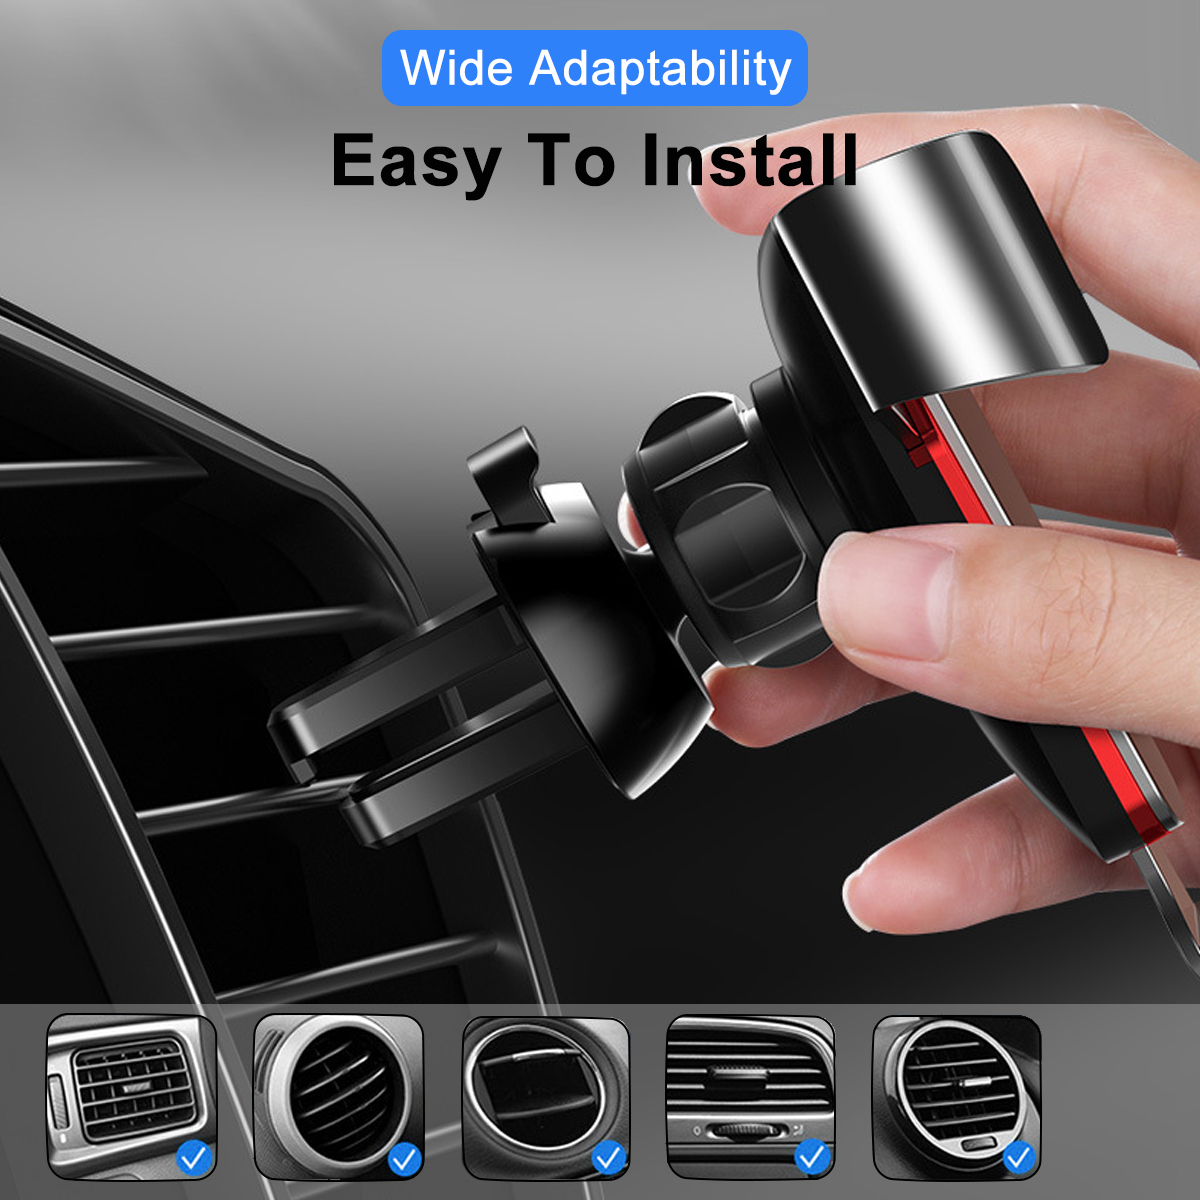 Cafele Metal Gravity One-handed Operation Air Vent Car Mount Car Phone Holder 360 Degree Rotation For 4.0-6.5 Inch Smart Phone